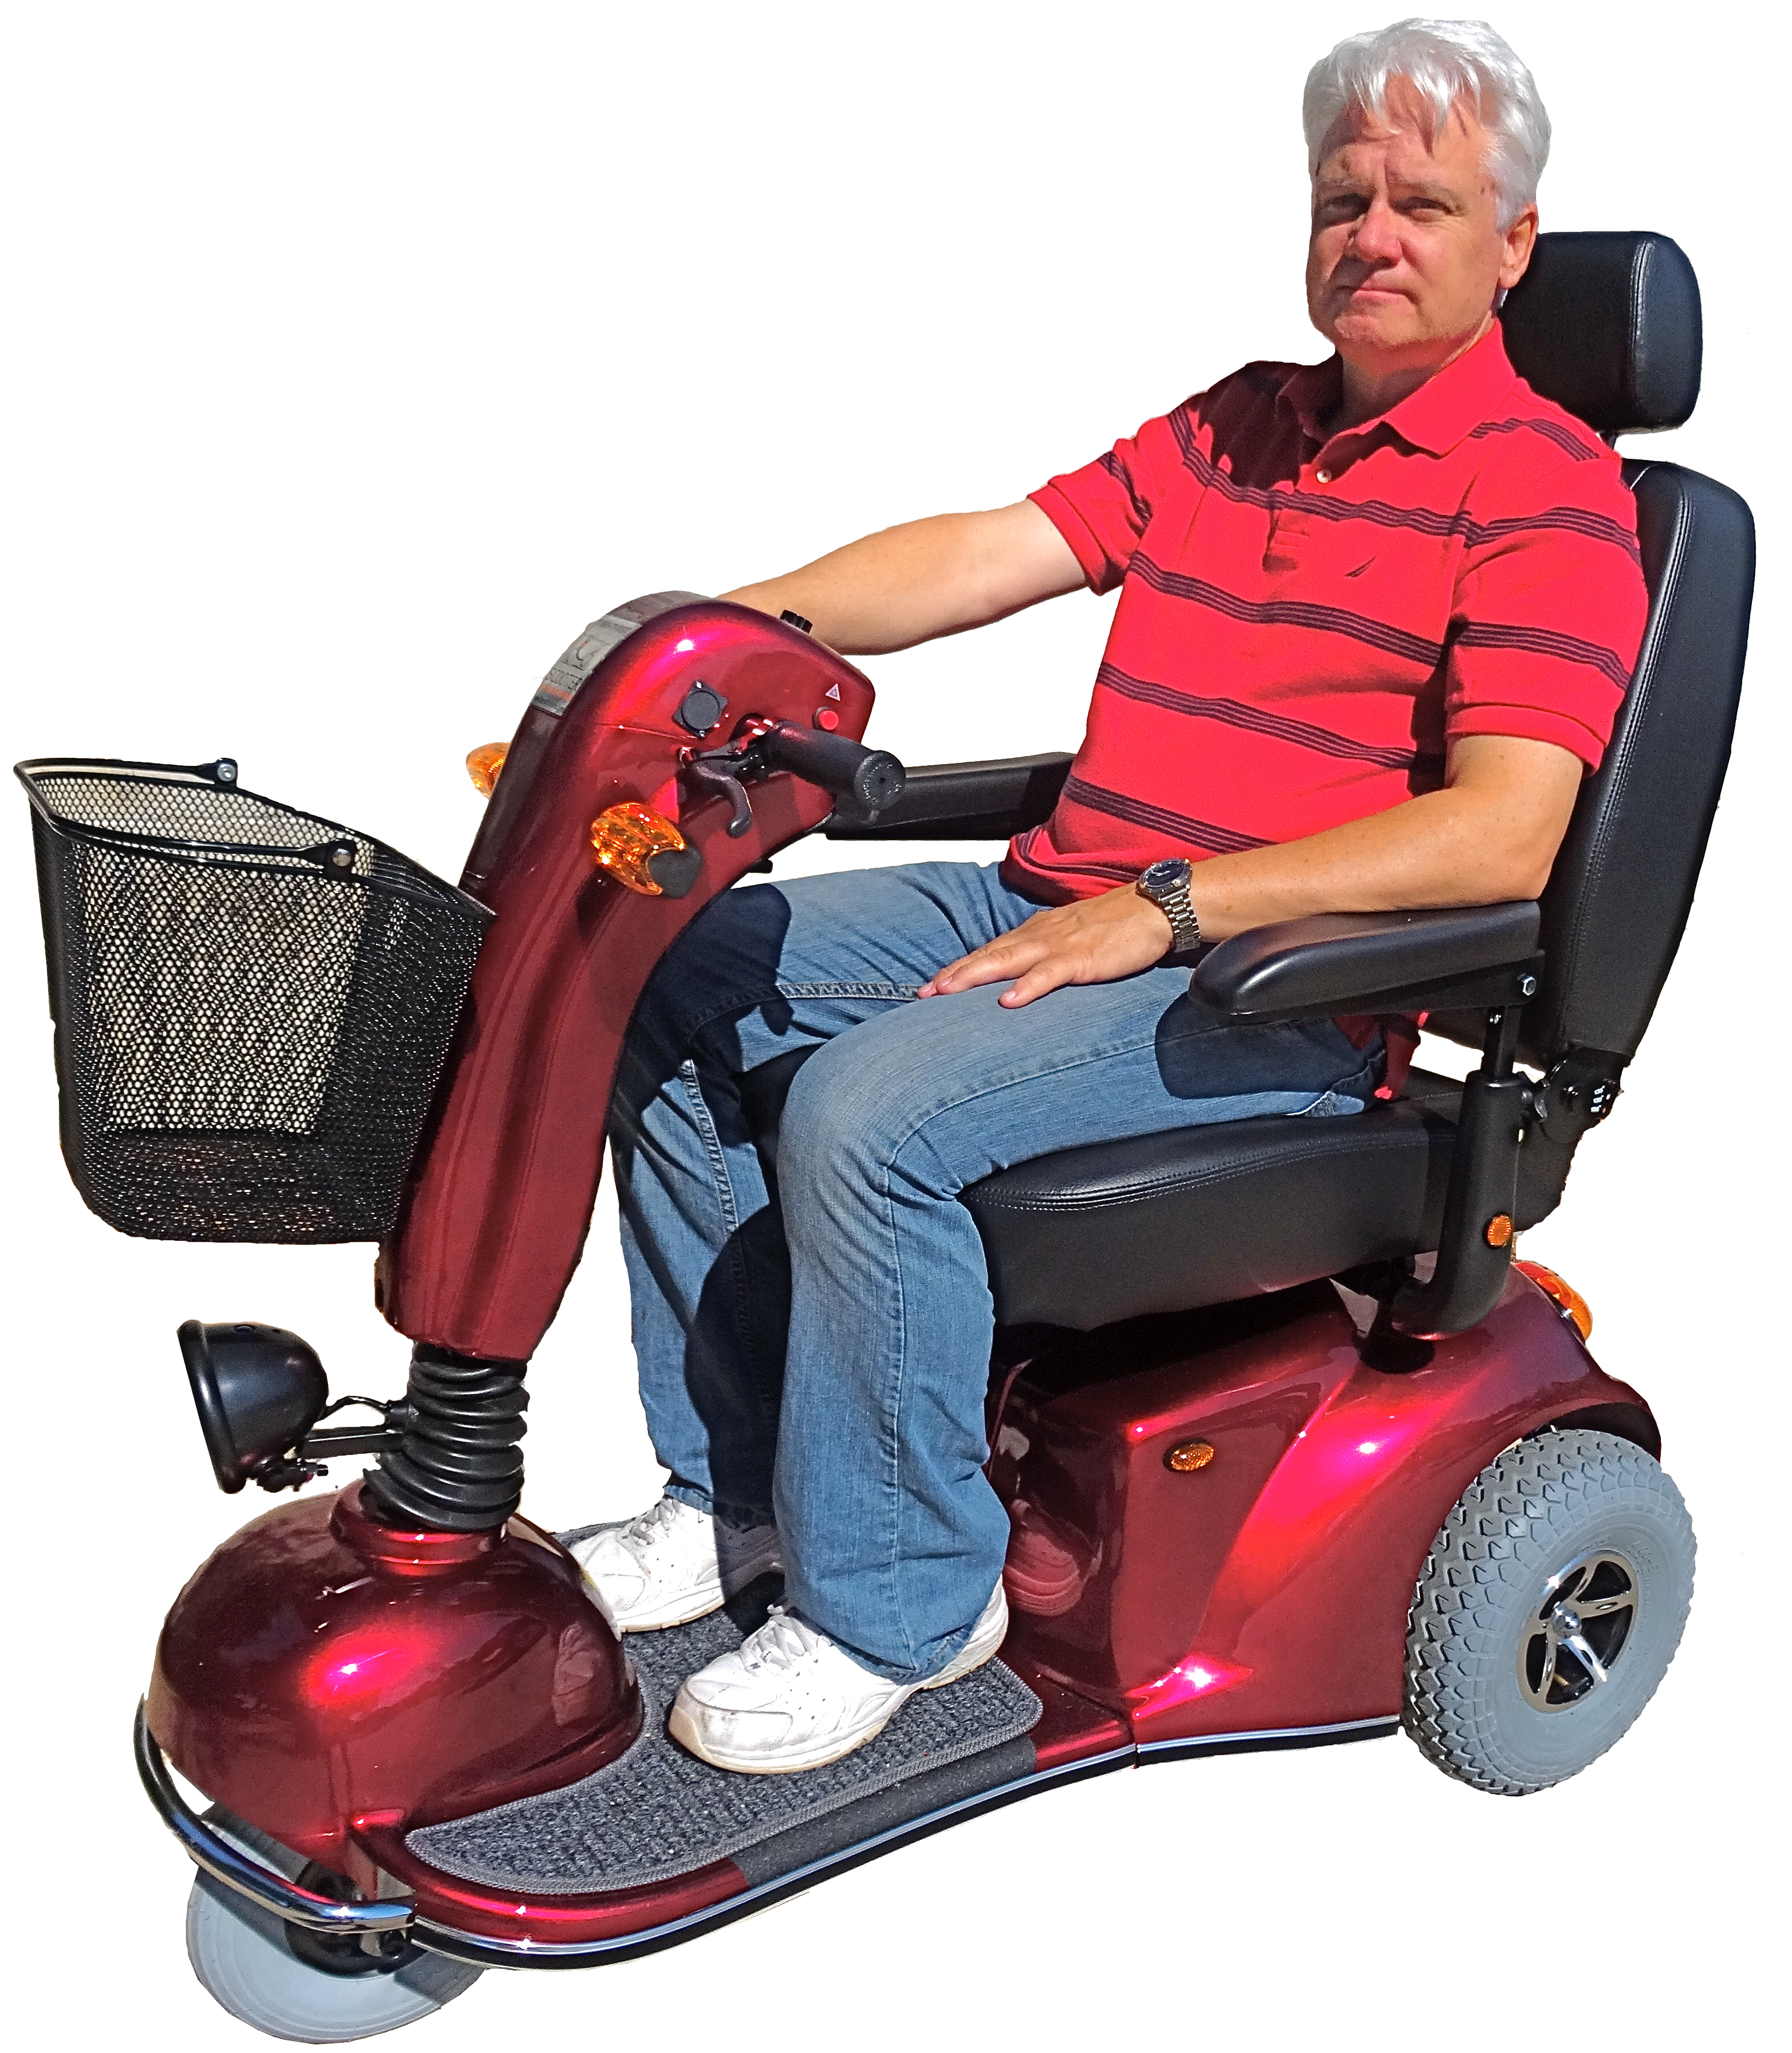 Scooter vacations announces new model fantasy for scooter for Motorized scooter disney world